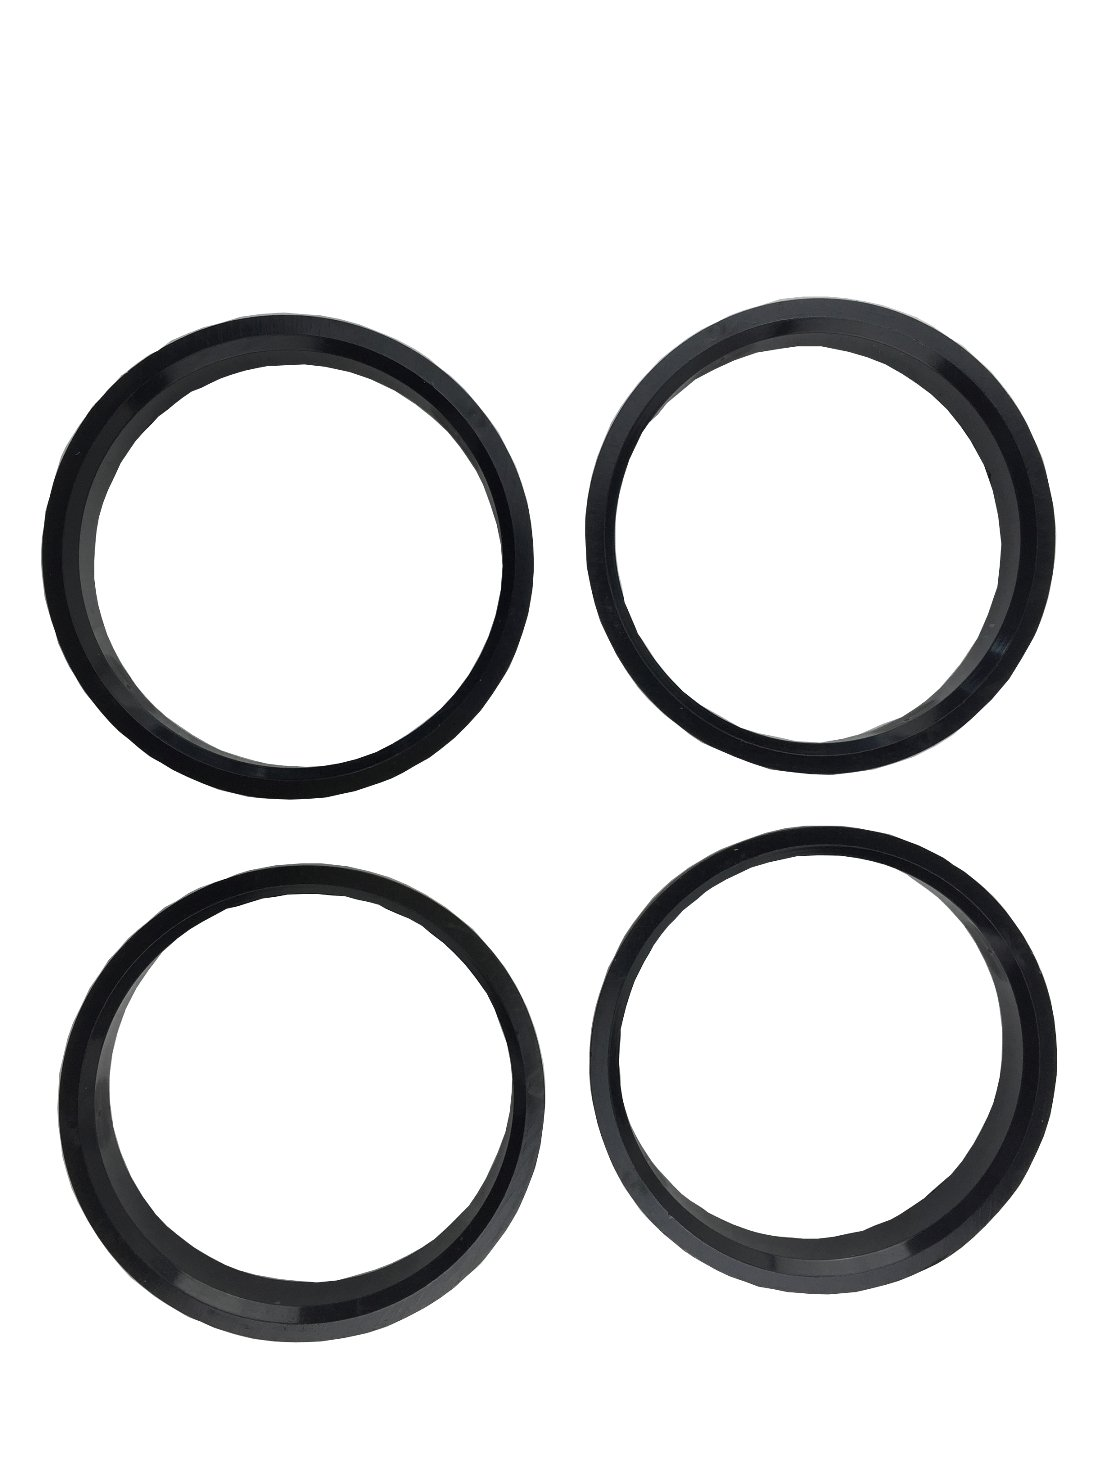 4 Pieces - Hub Centric Rings - 74.1mm OD to 67.1 mm ID - Black Poly Carbon Hub Rings JianDa